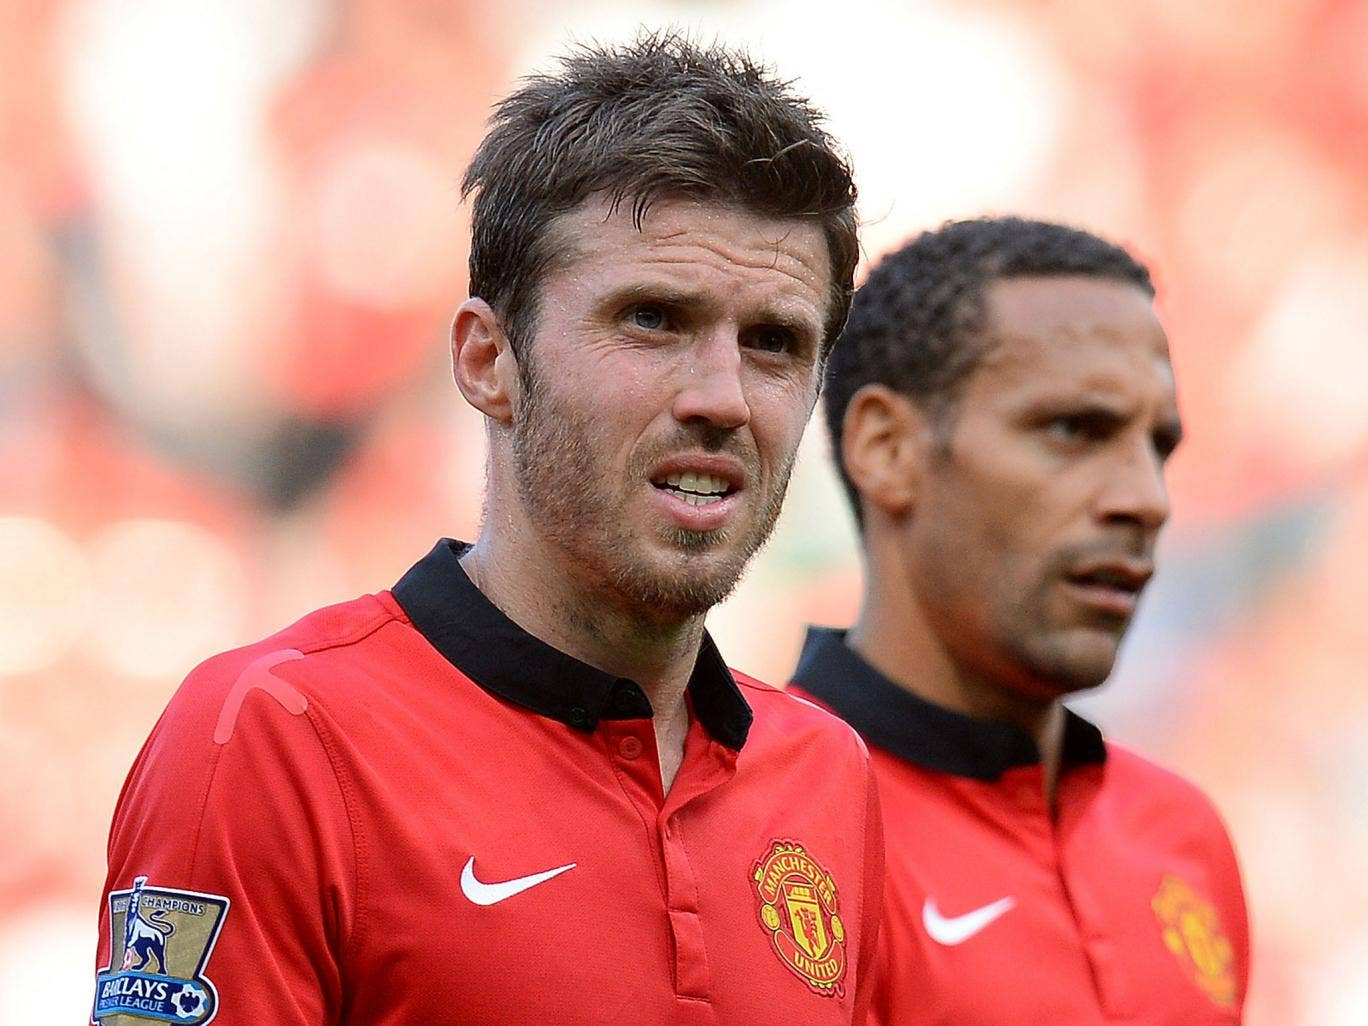 Michael Carrick has said the Manchester United squad need to address their poor form head-on